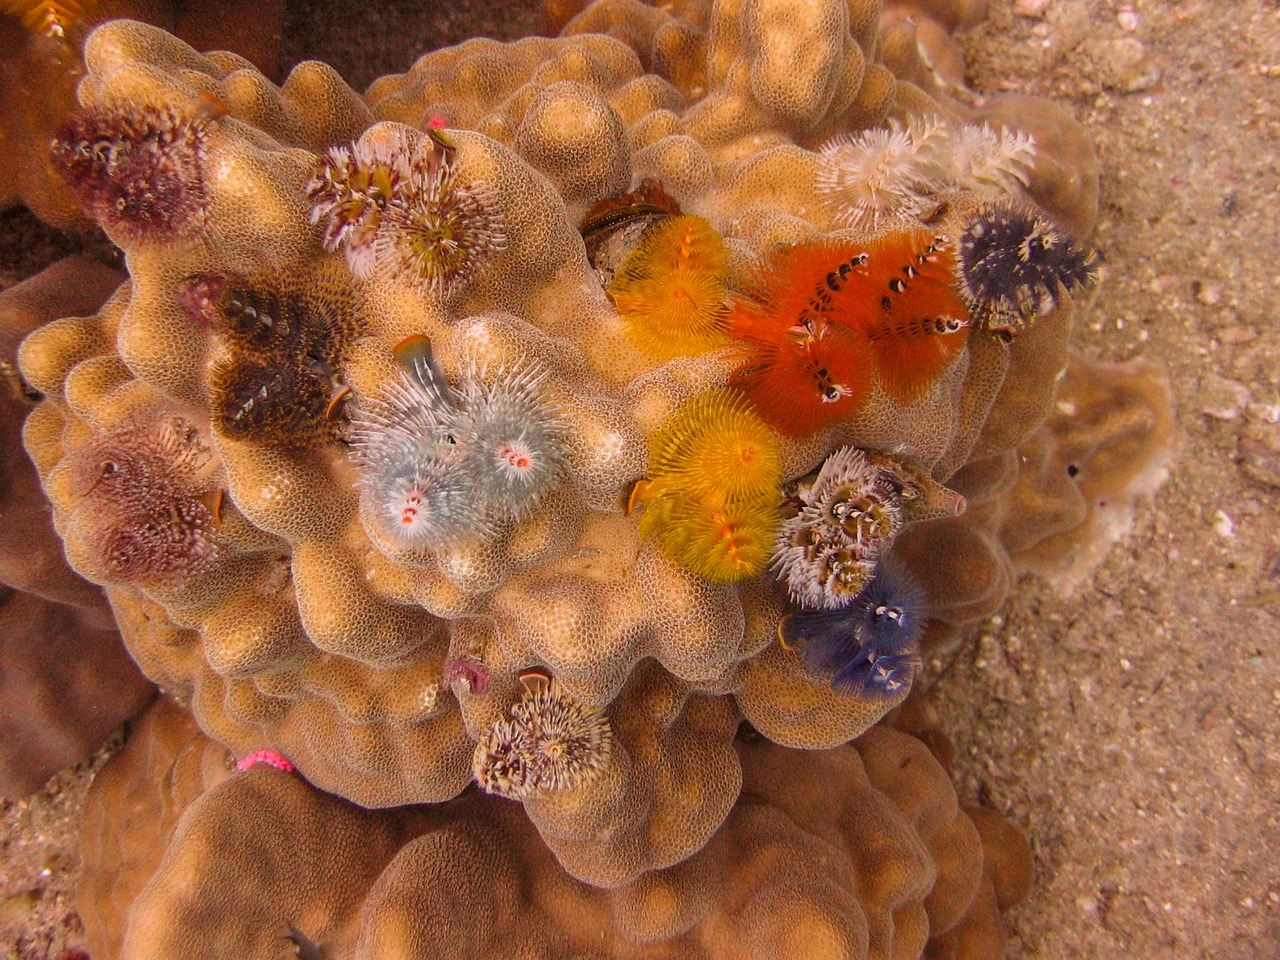 Happy Holidays: 5 Facts About Christmas Tree Worms - Dr. Carin Bondar